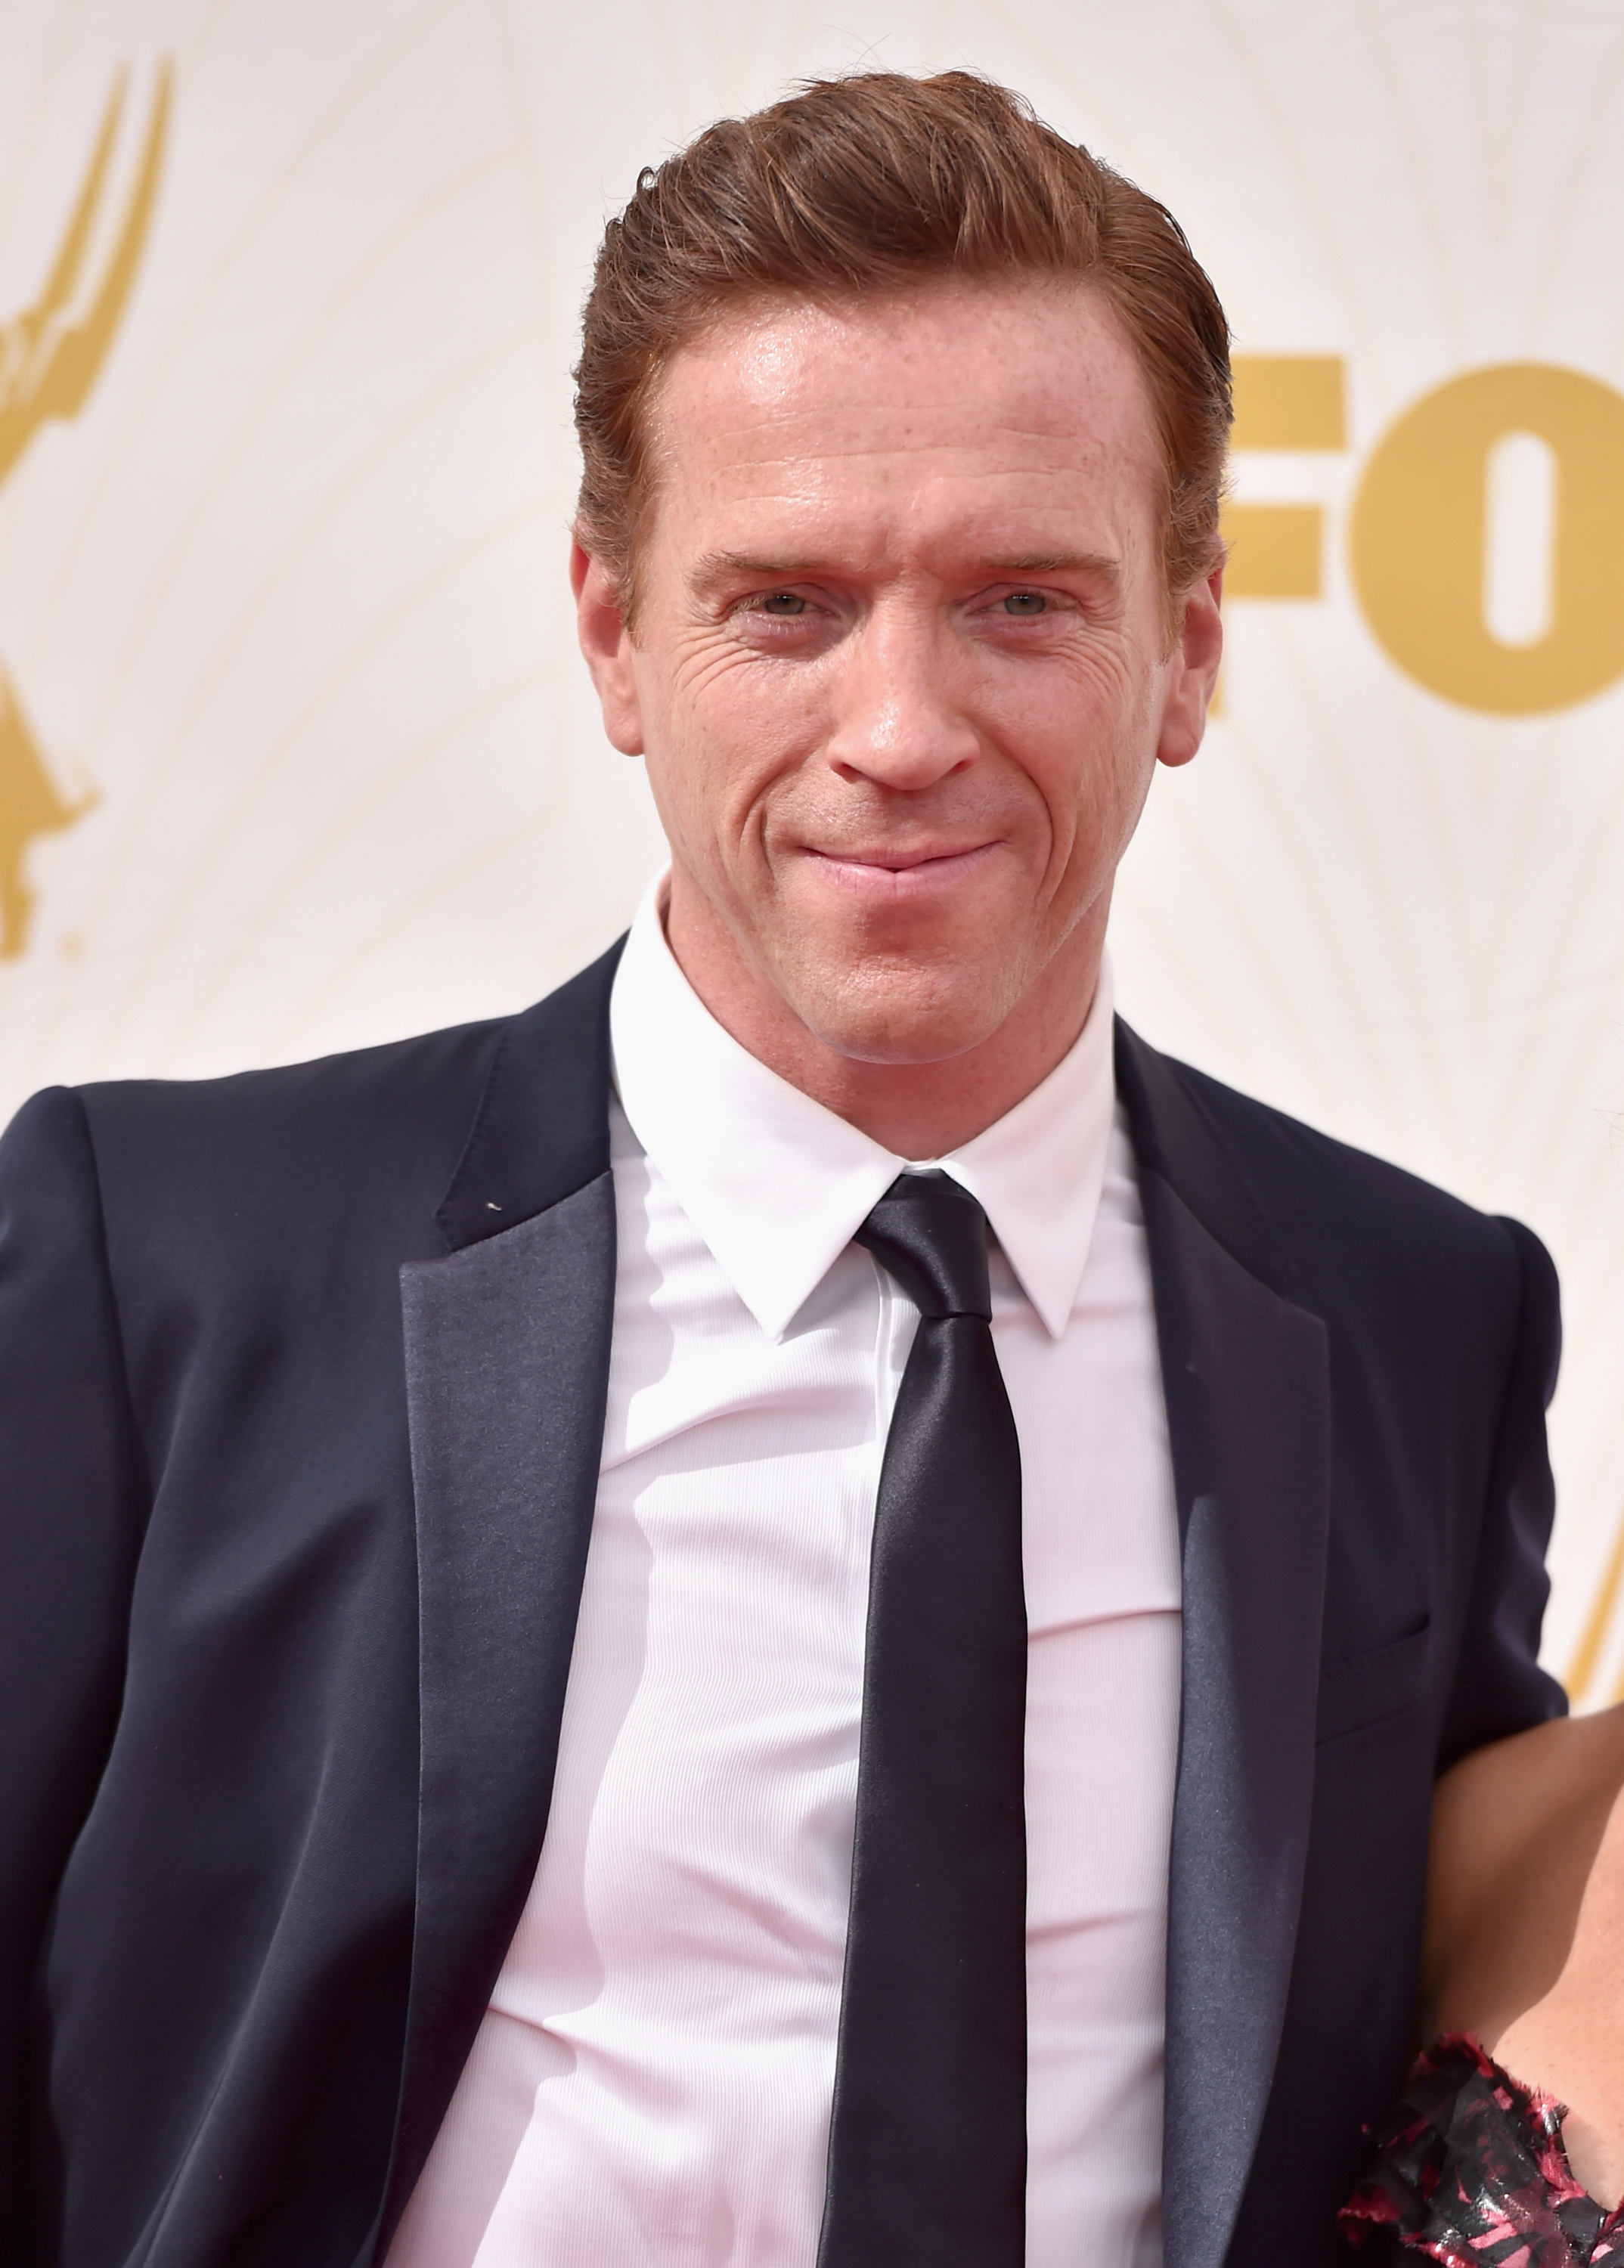 Damian Lewis_GettyImages_Alberto E. Rodriguez